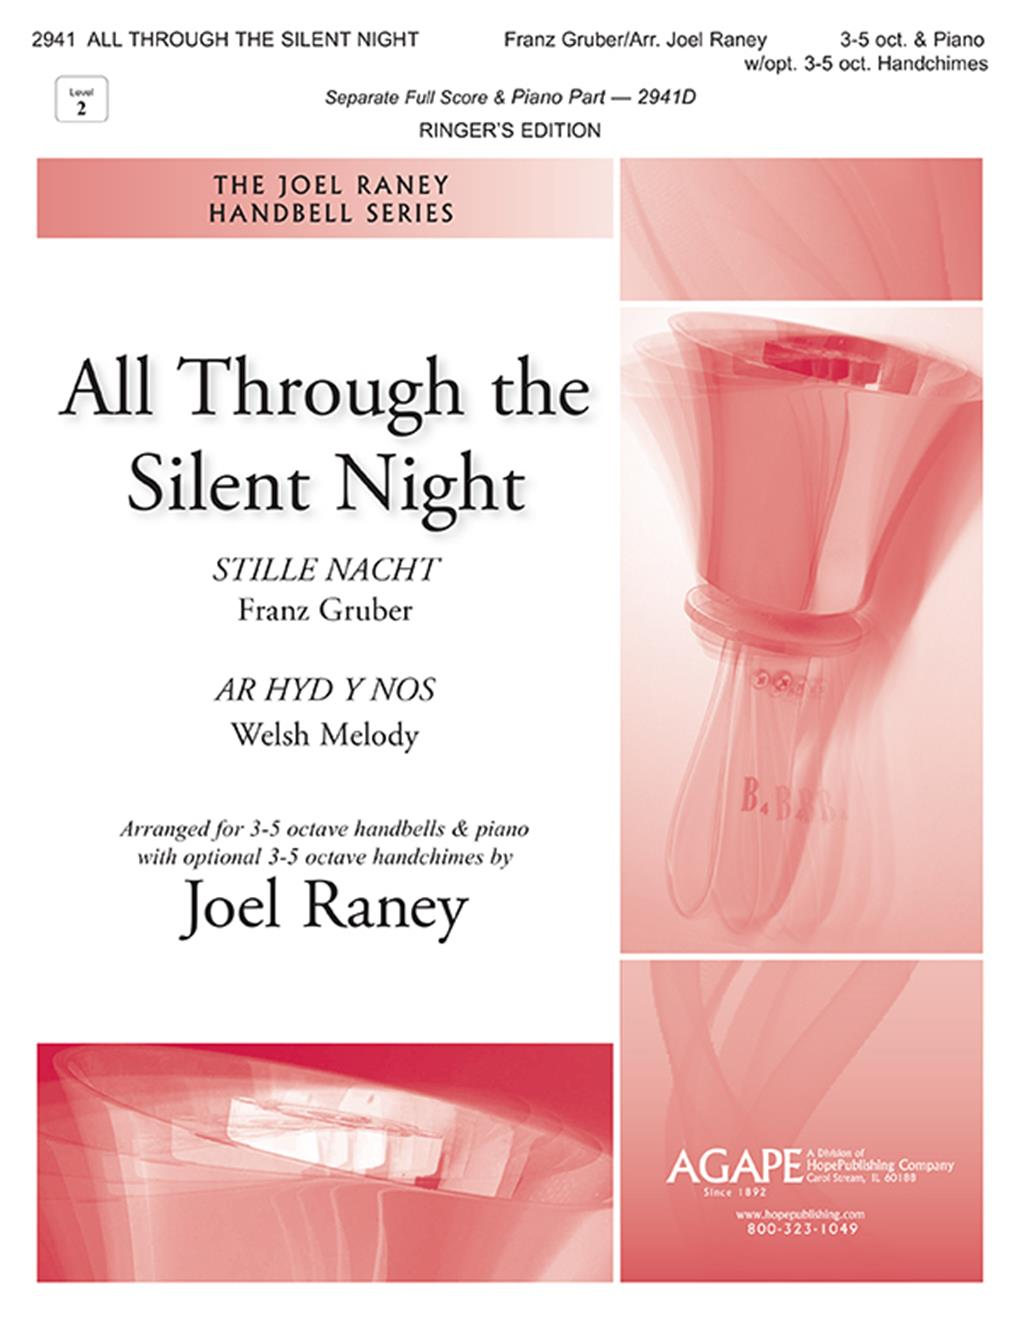 All Through the Silent Night - 3-5 Oct. Cover Image